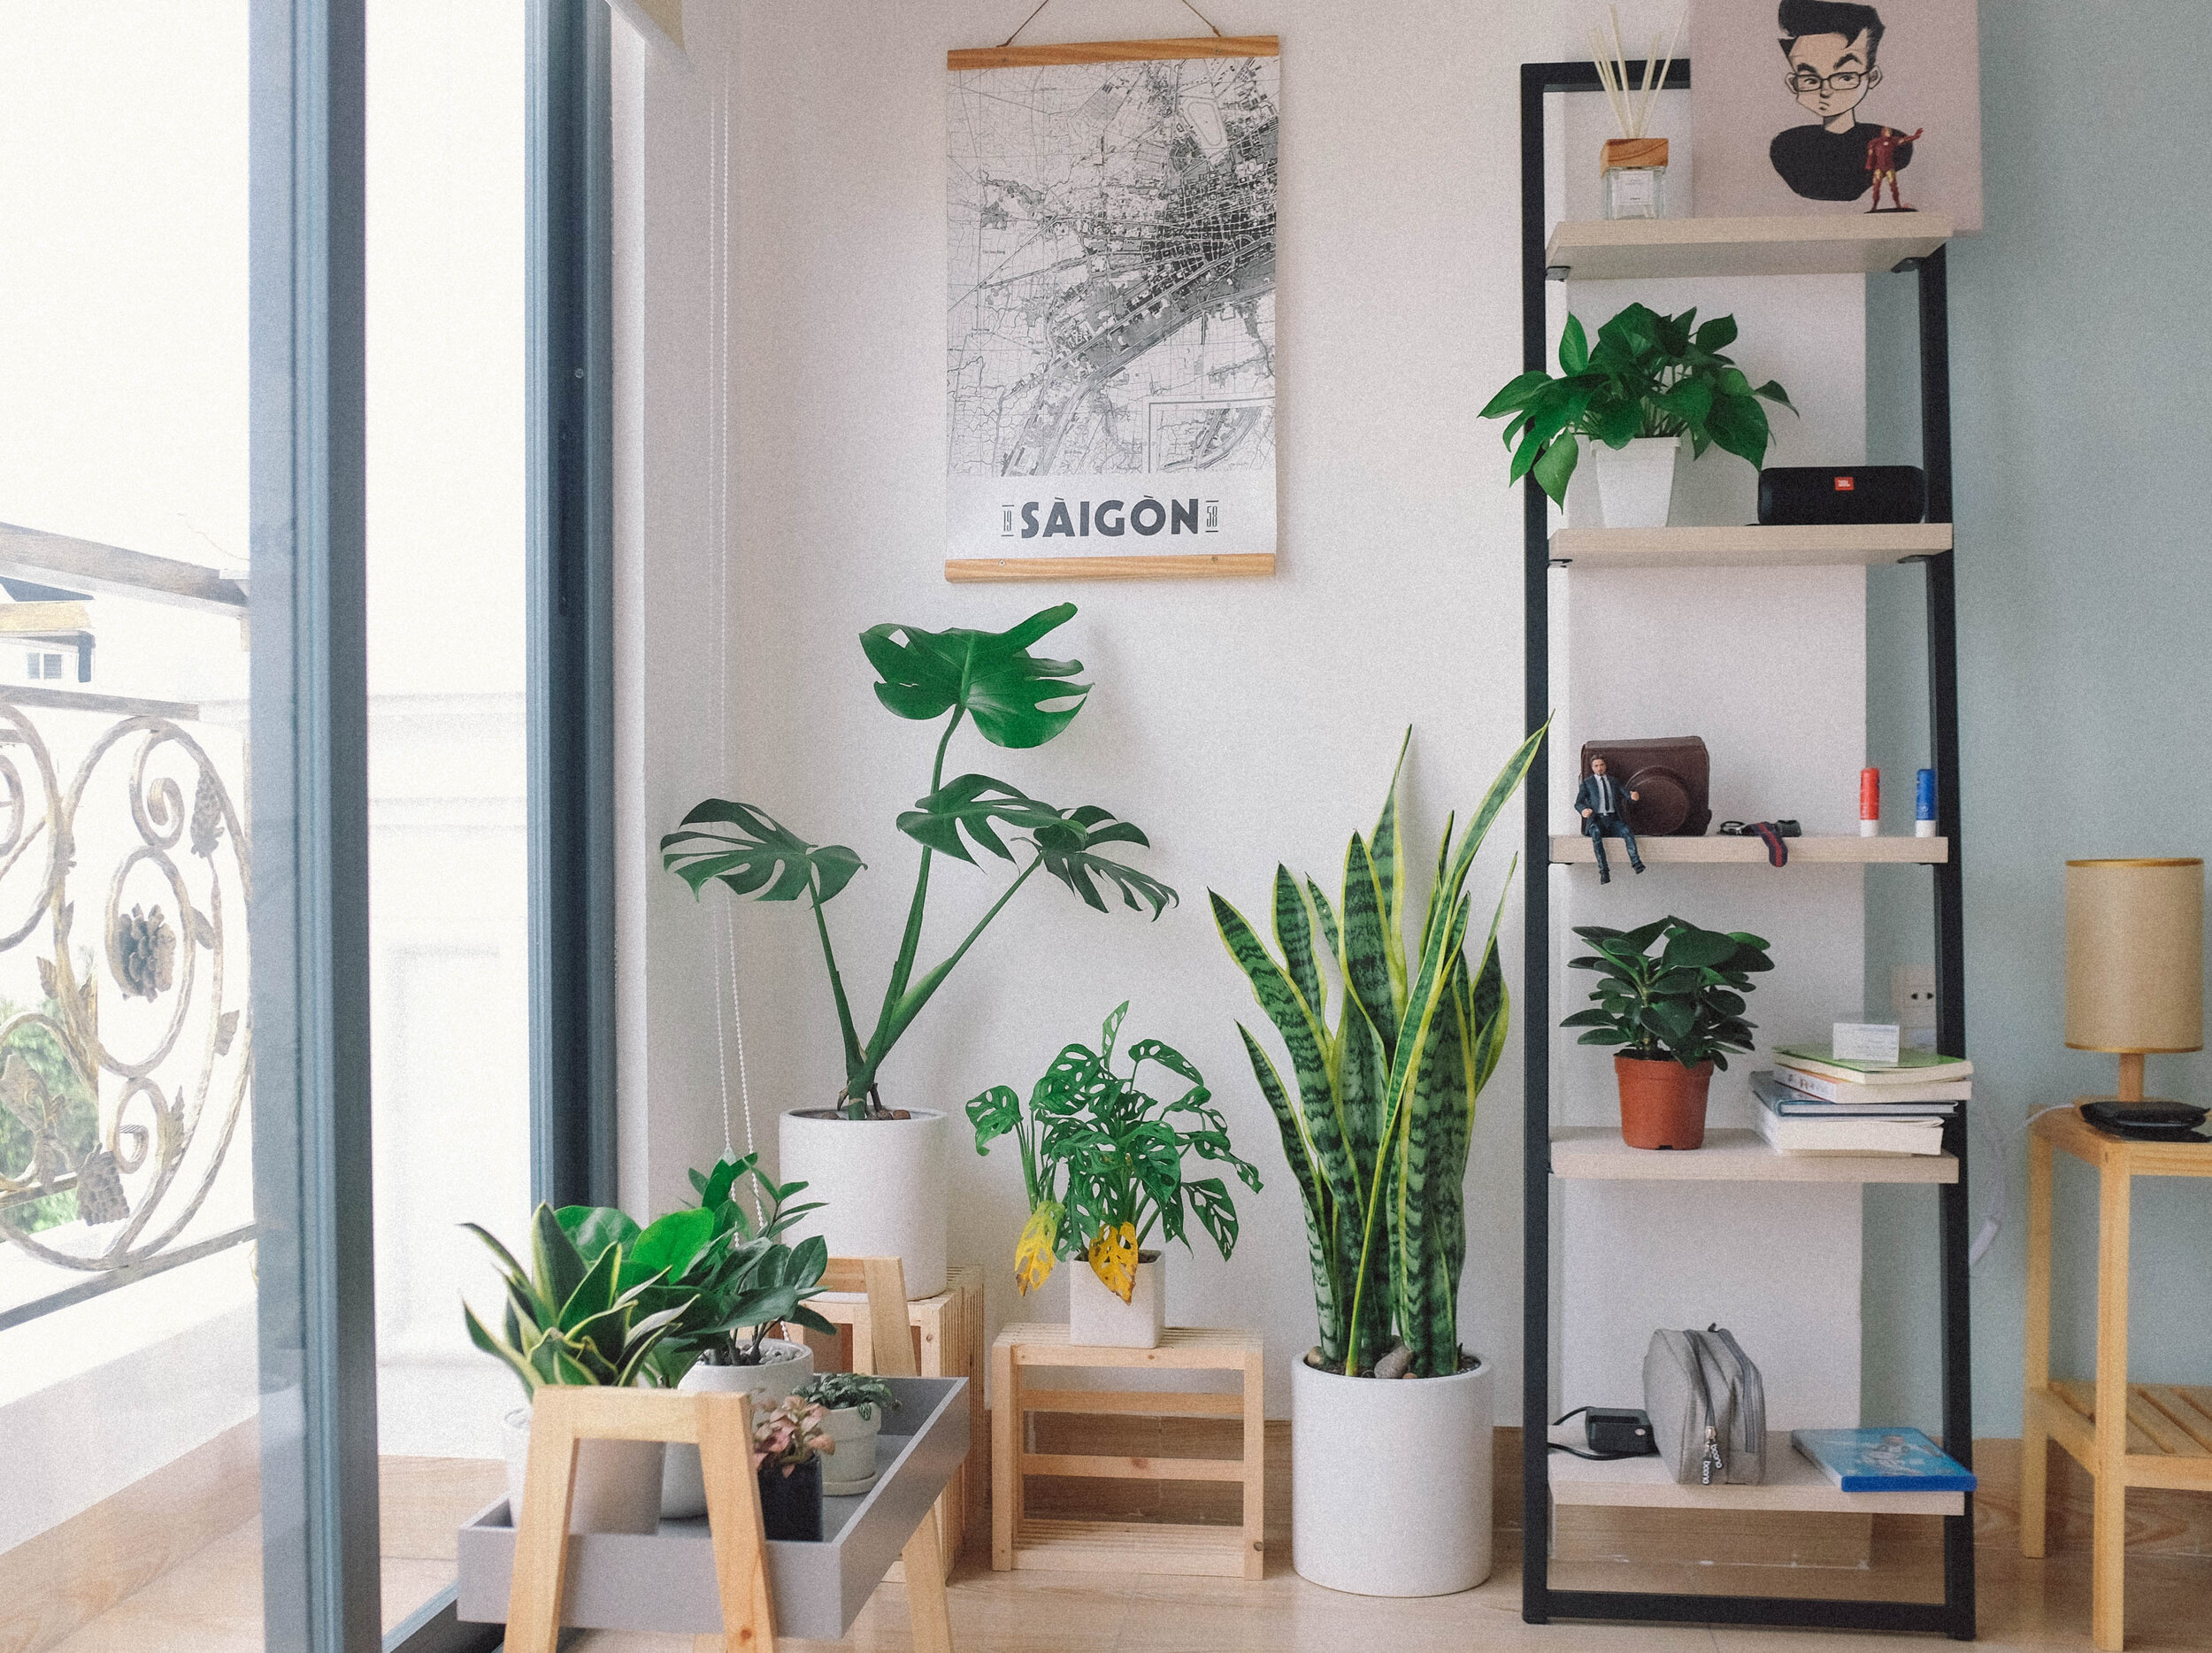 How To Decorate A Small Living Room With Plants La Residence Plant Care Tips And More